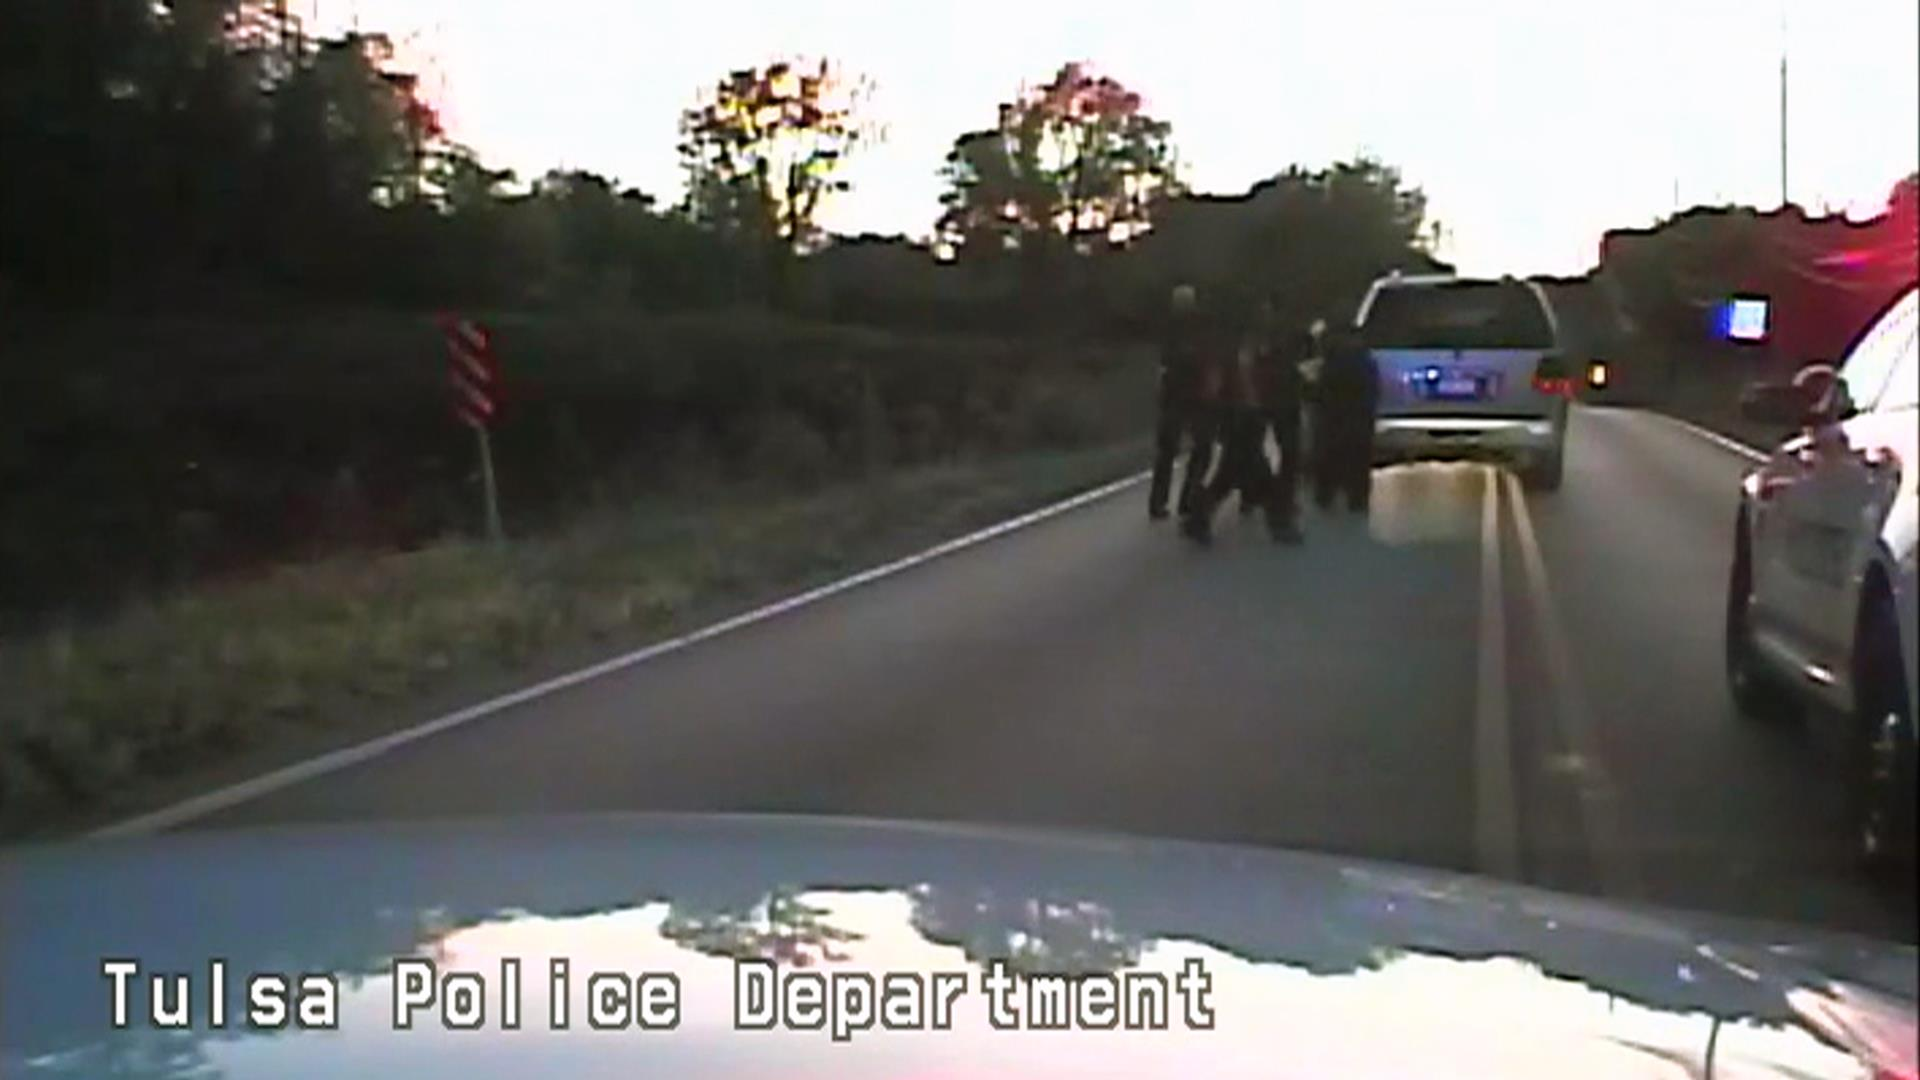 Terence Crutcher Shooting: 'Disturbing' Helicopter Footage Shows Tulsa Police Kill Unarmed Man